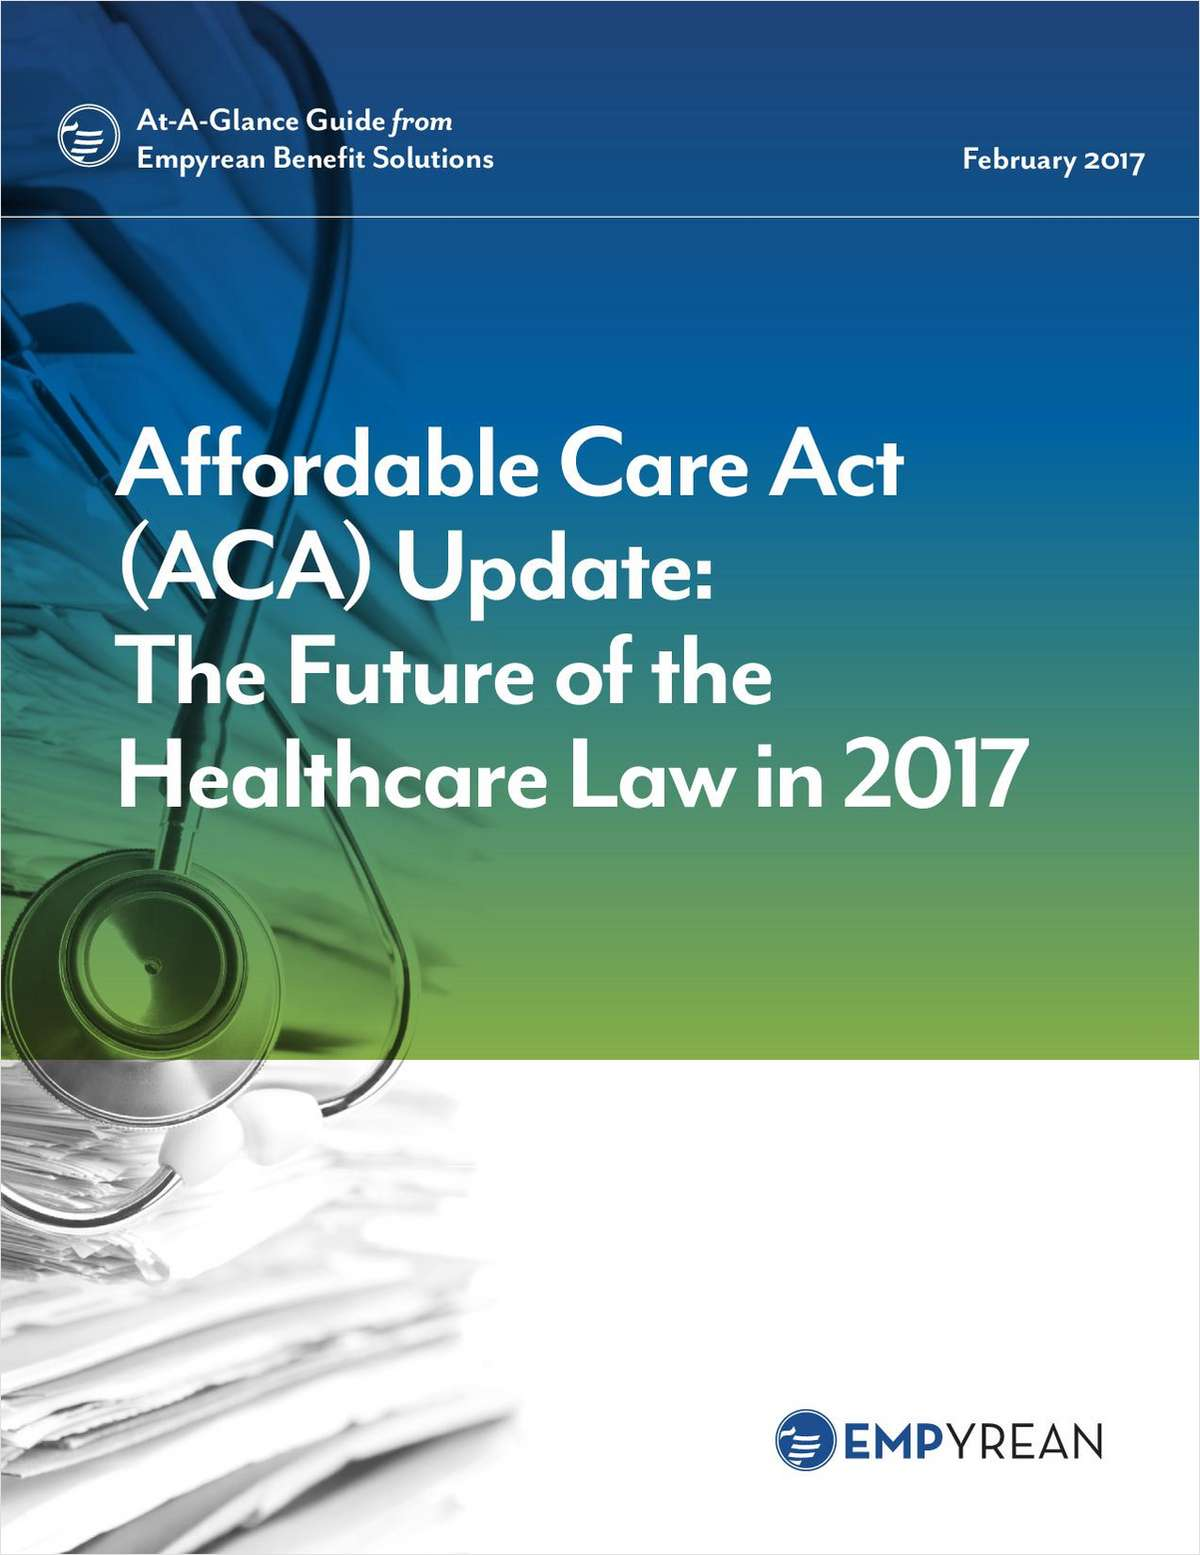 Affordable Care Act (ACA) Update: The Future of the Healthcare Law in 2017